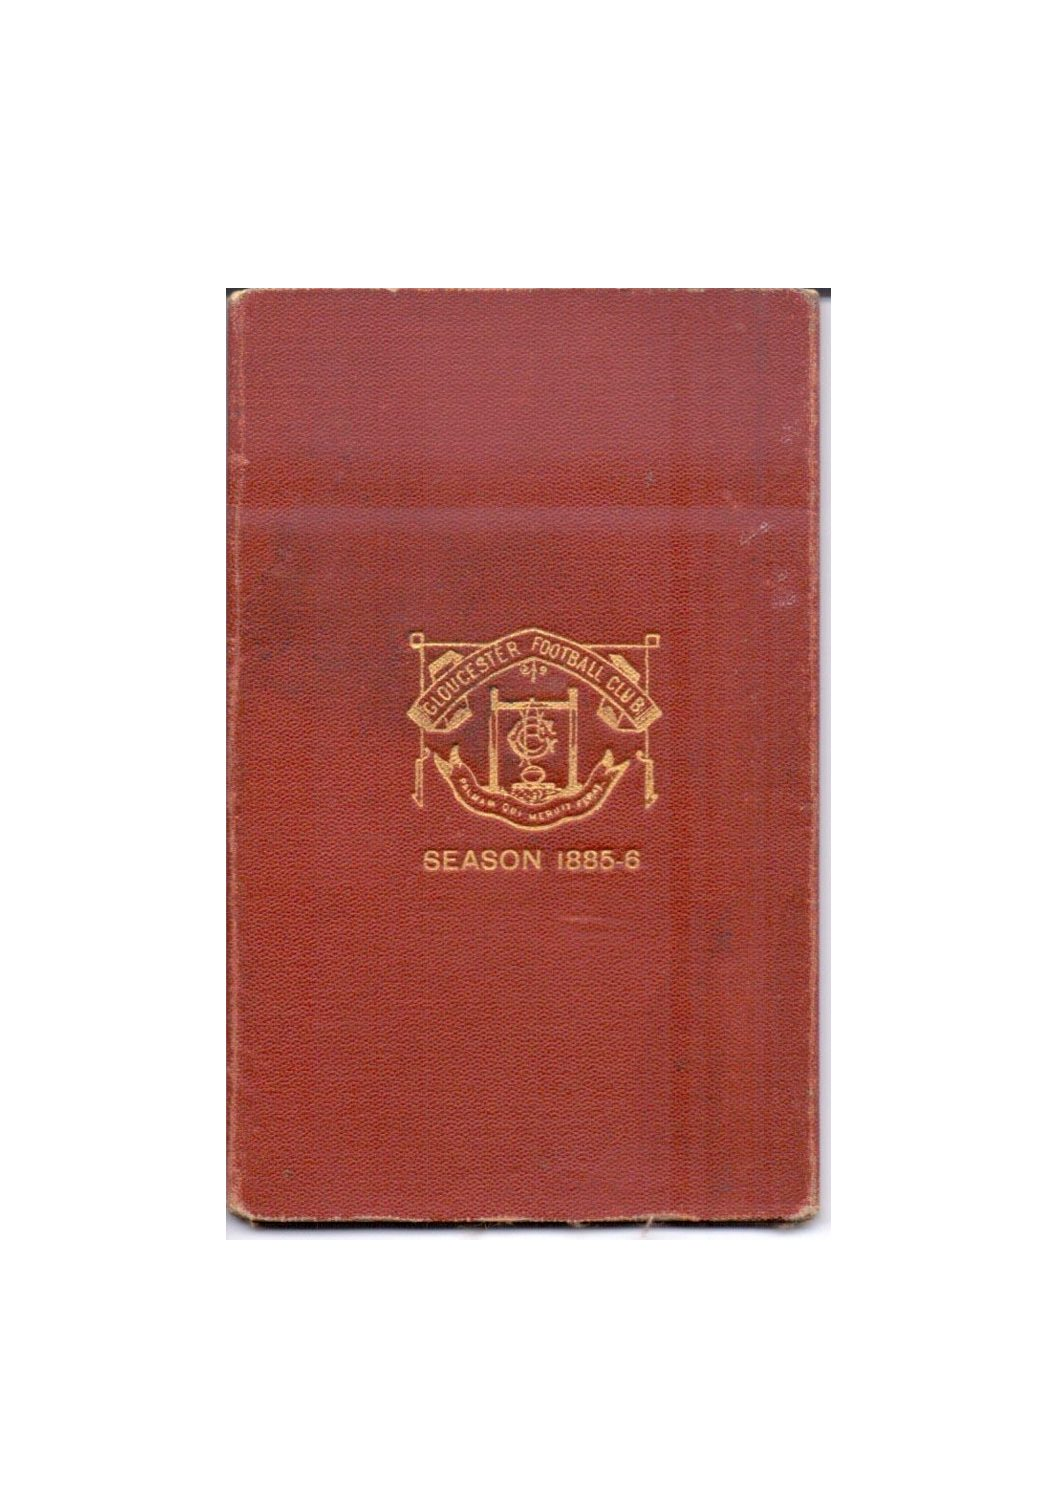 1885-86 Season Ticket